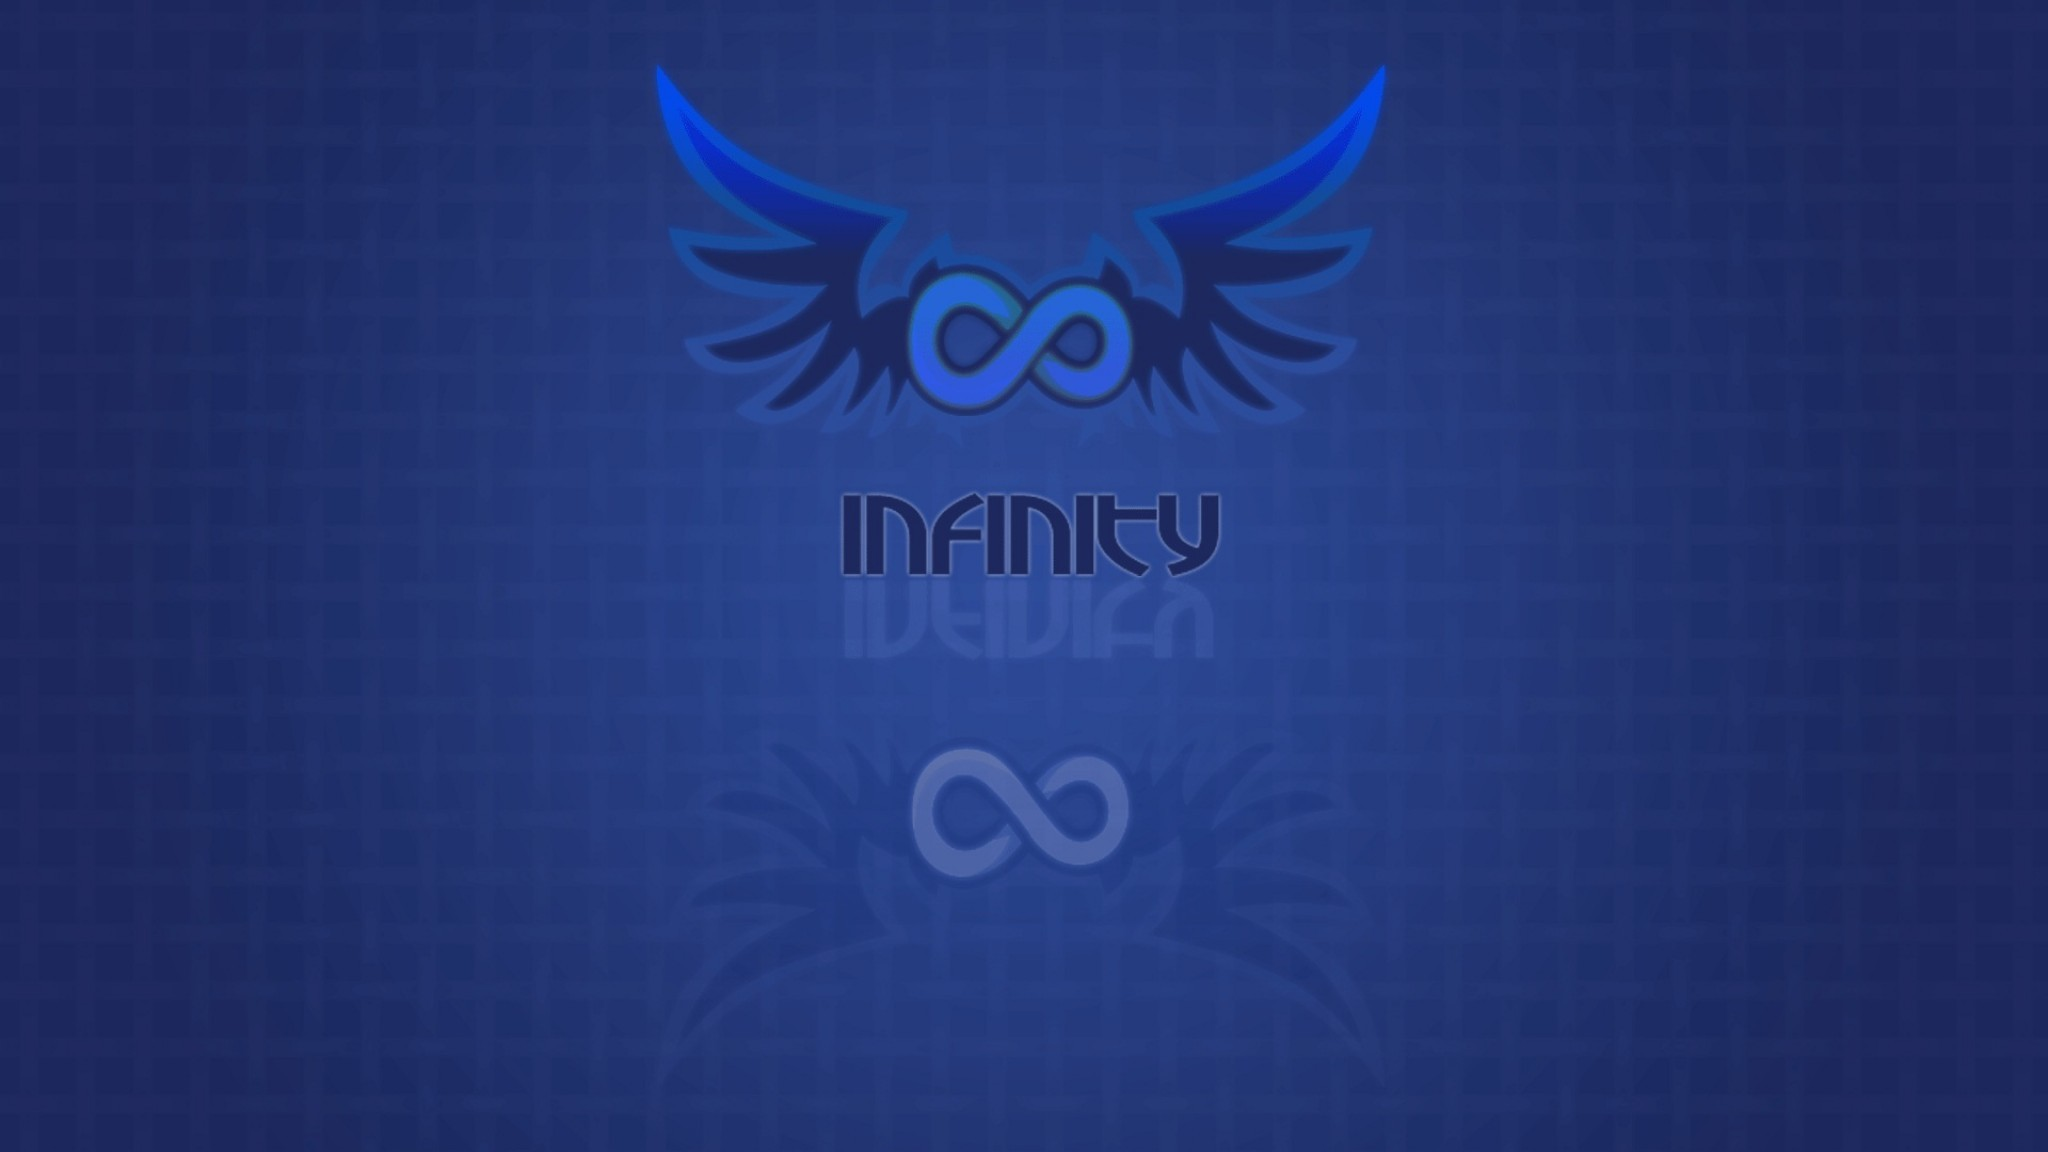 2048x1152 Infinity Sign Wallpaper Iphone - image #474